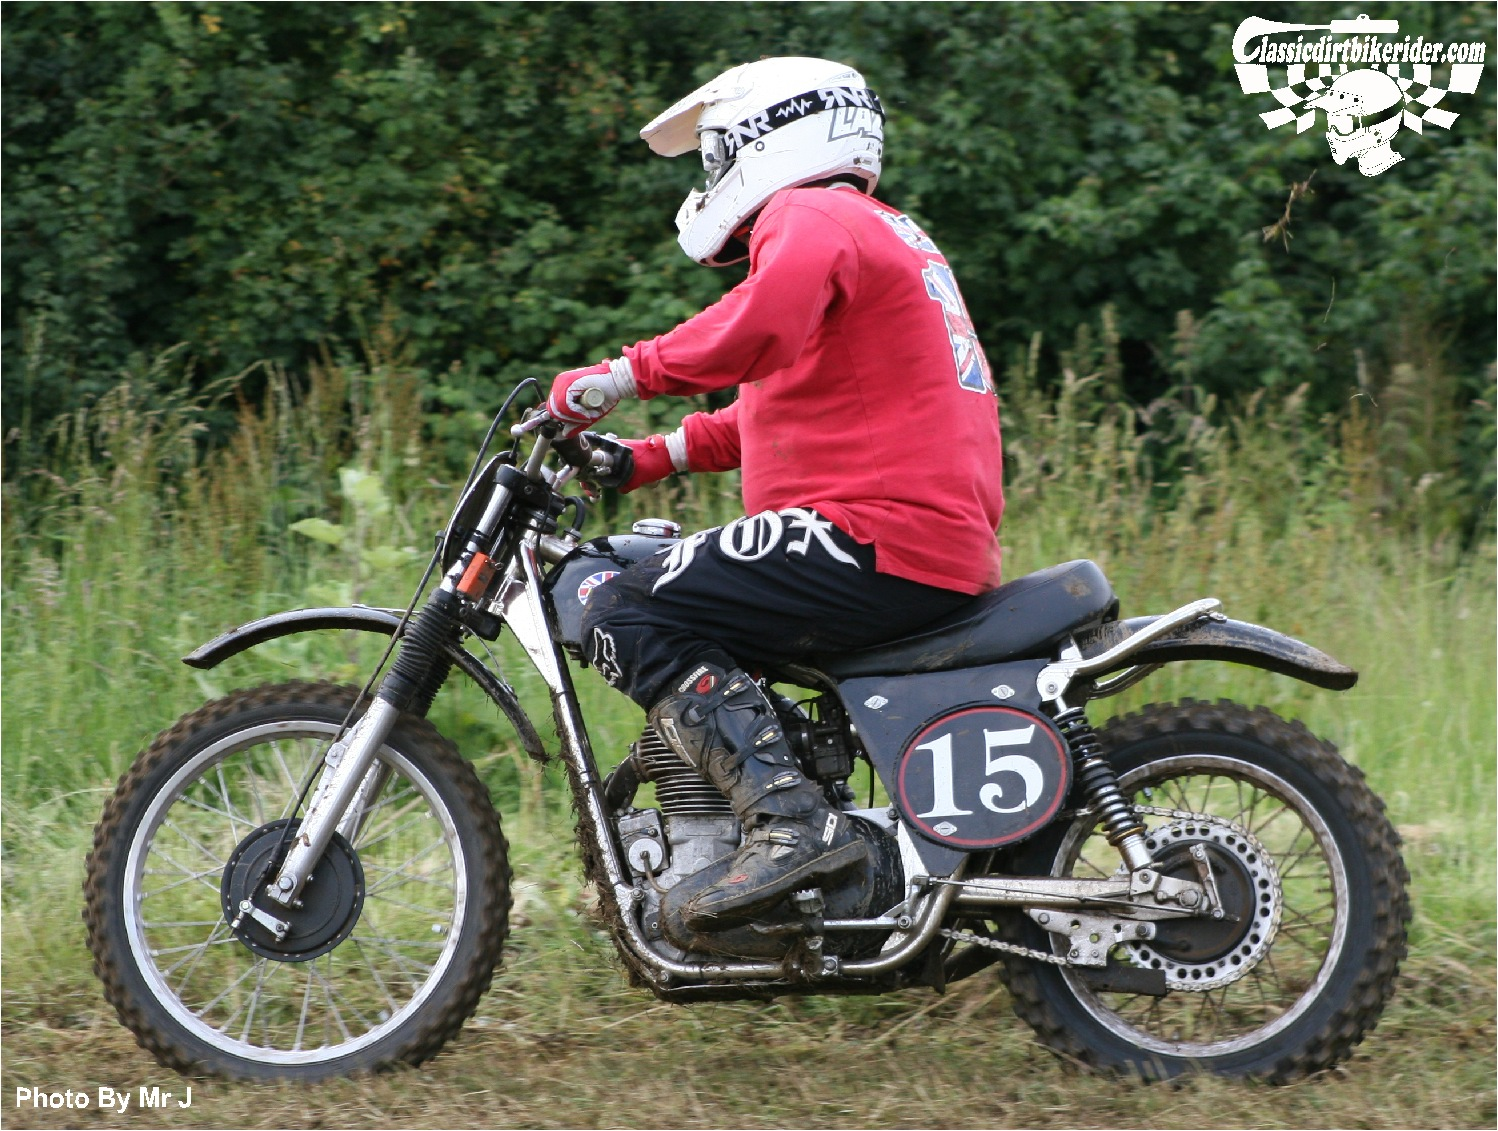 king of the castle 2015 photos Farleigh Castle twinshock motocross classicdirtbikerider.com 139